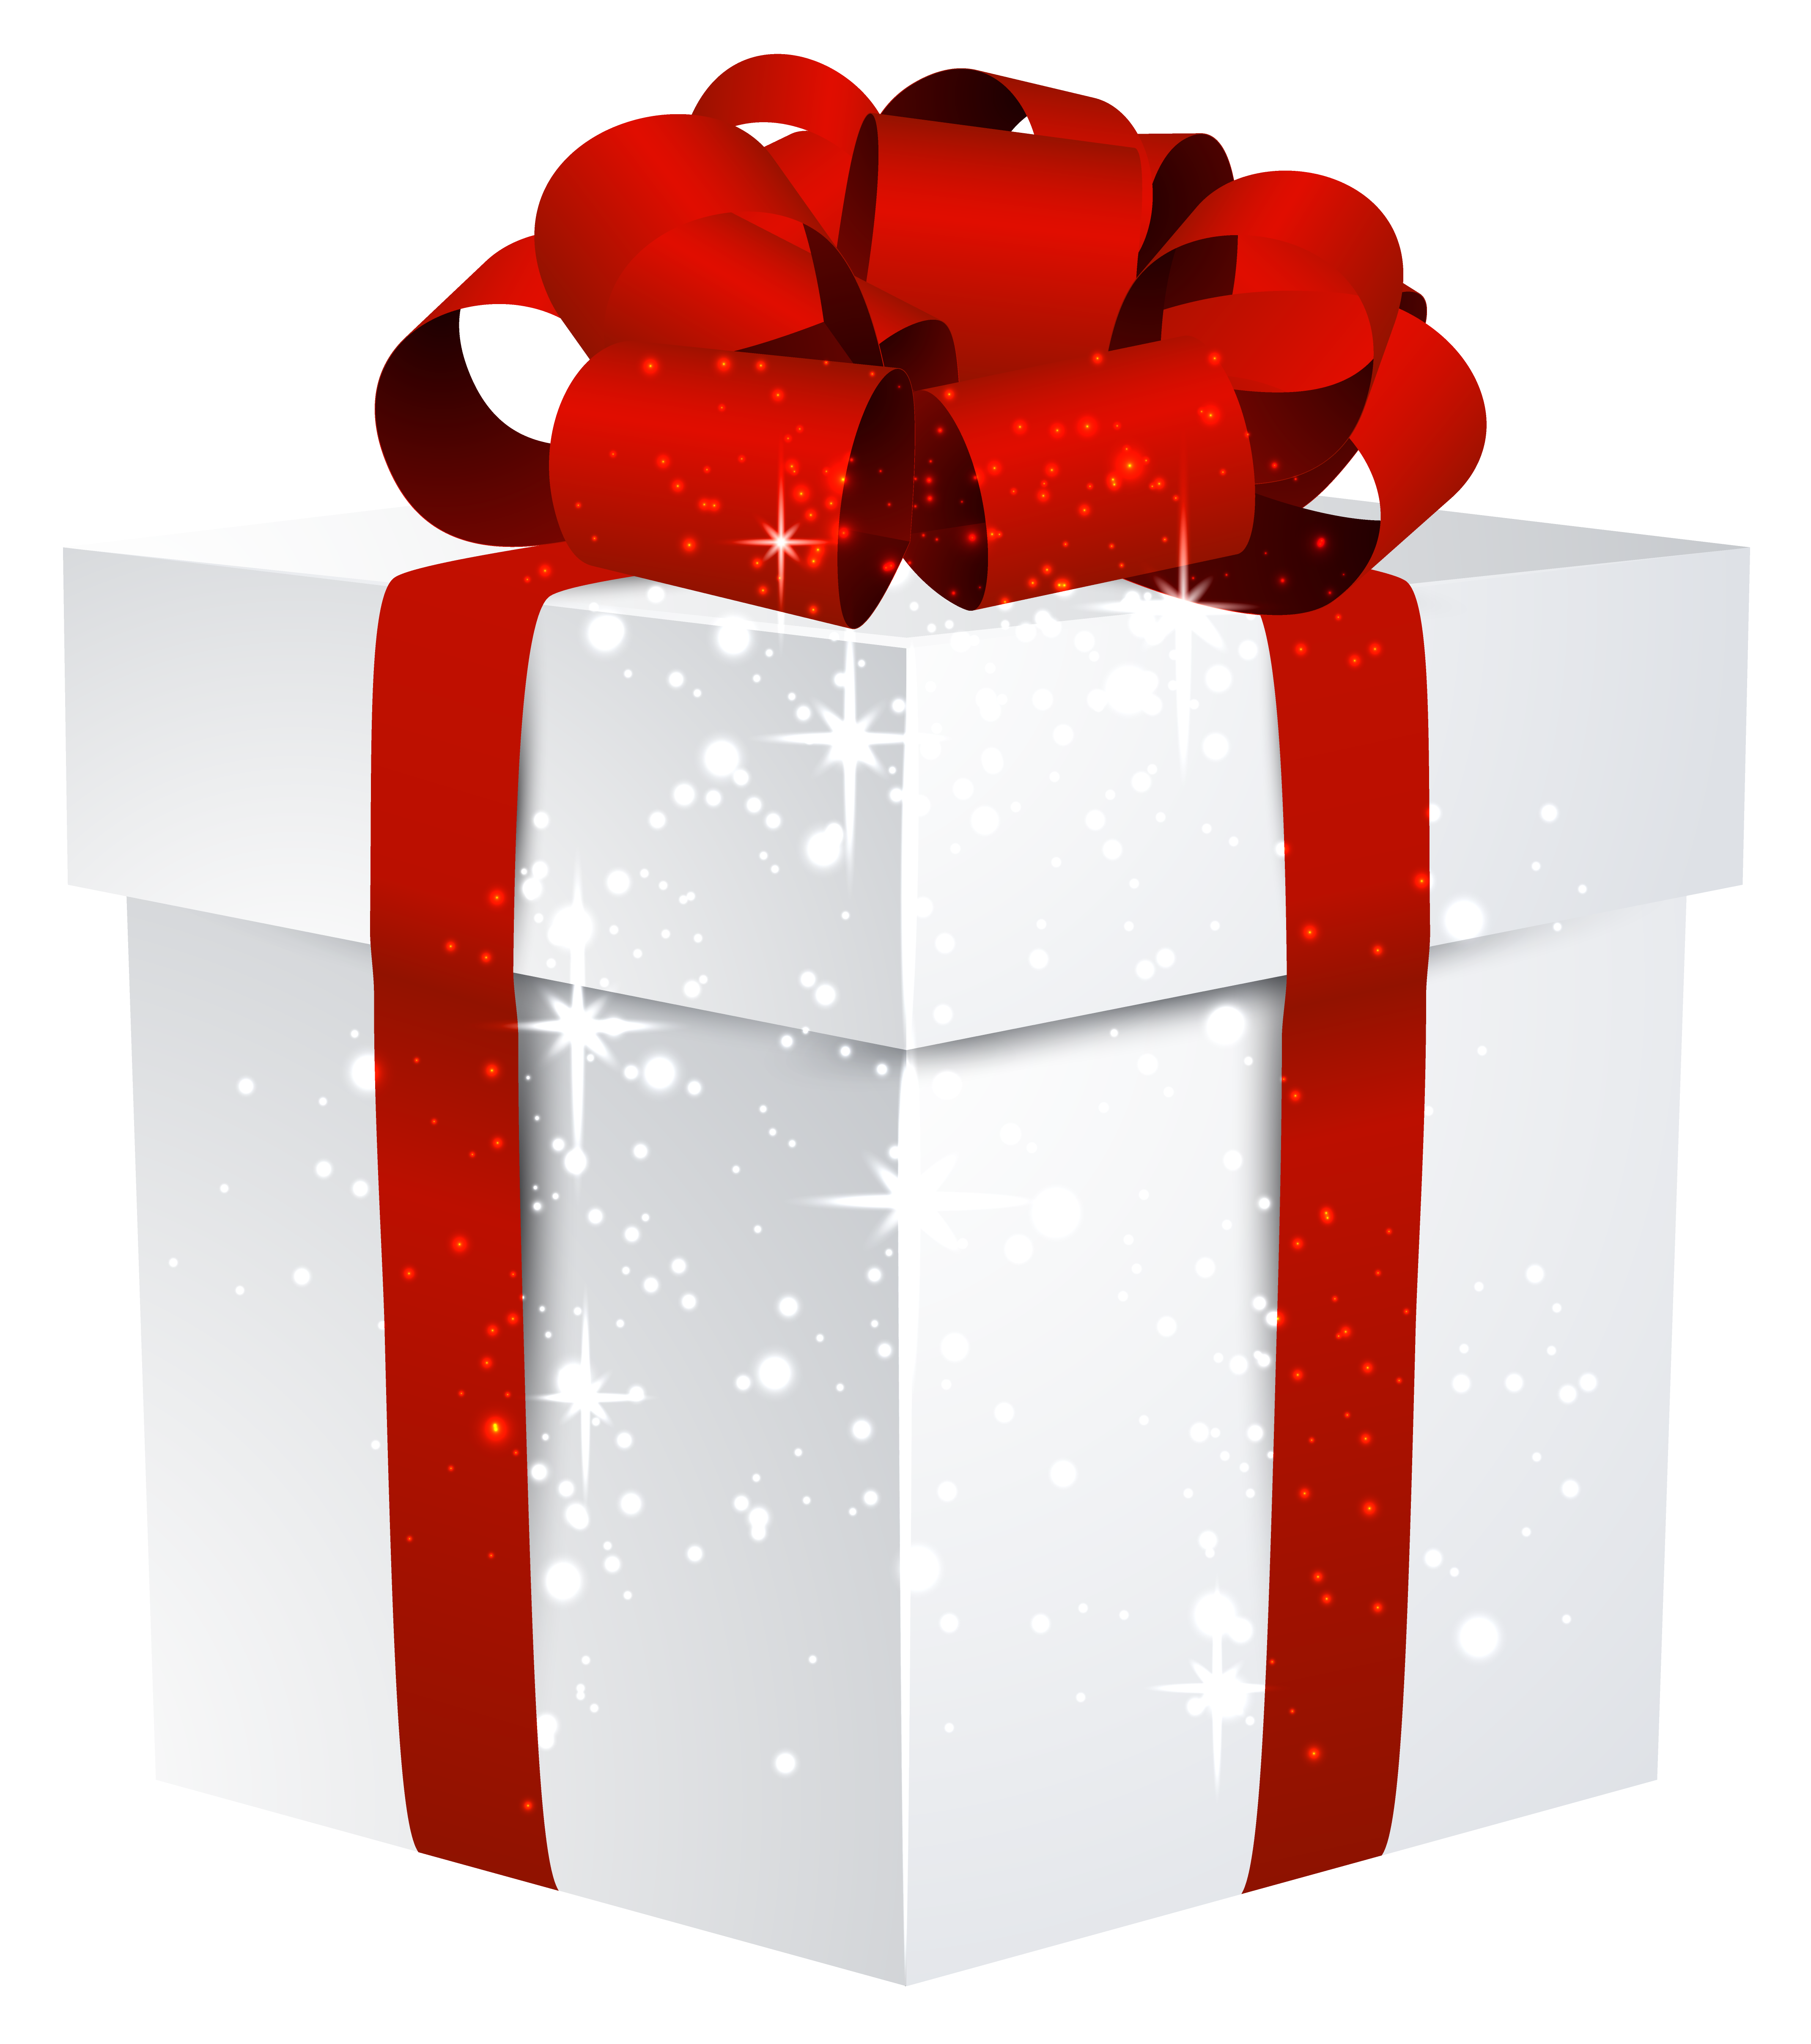 White Shining Gift Box with Bow PNG Clipart Image.